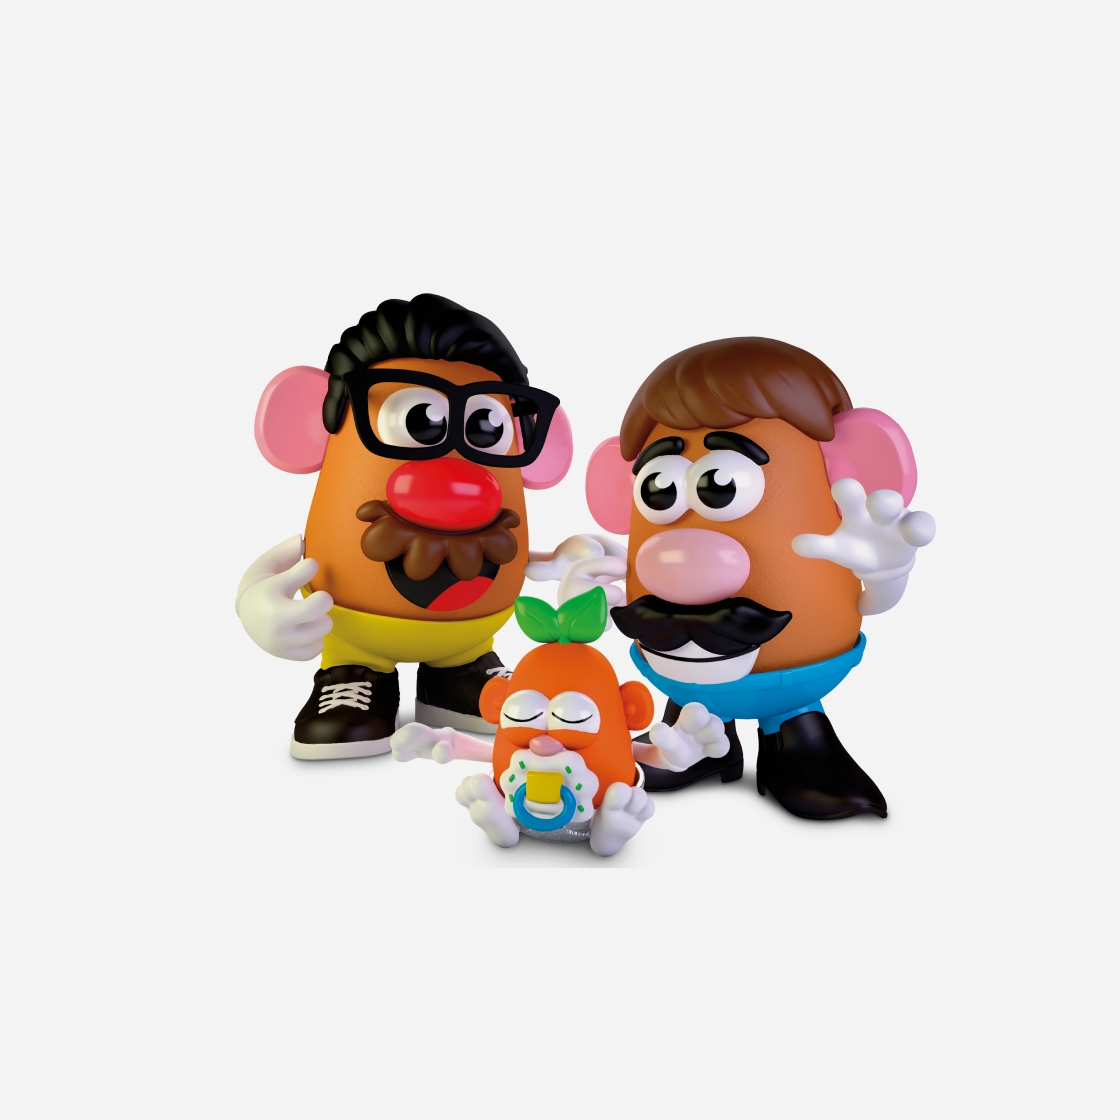 """Mr. and Mrs. Potato Head brand to be called just """"Potato Head"""""""